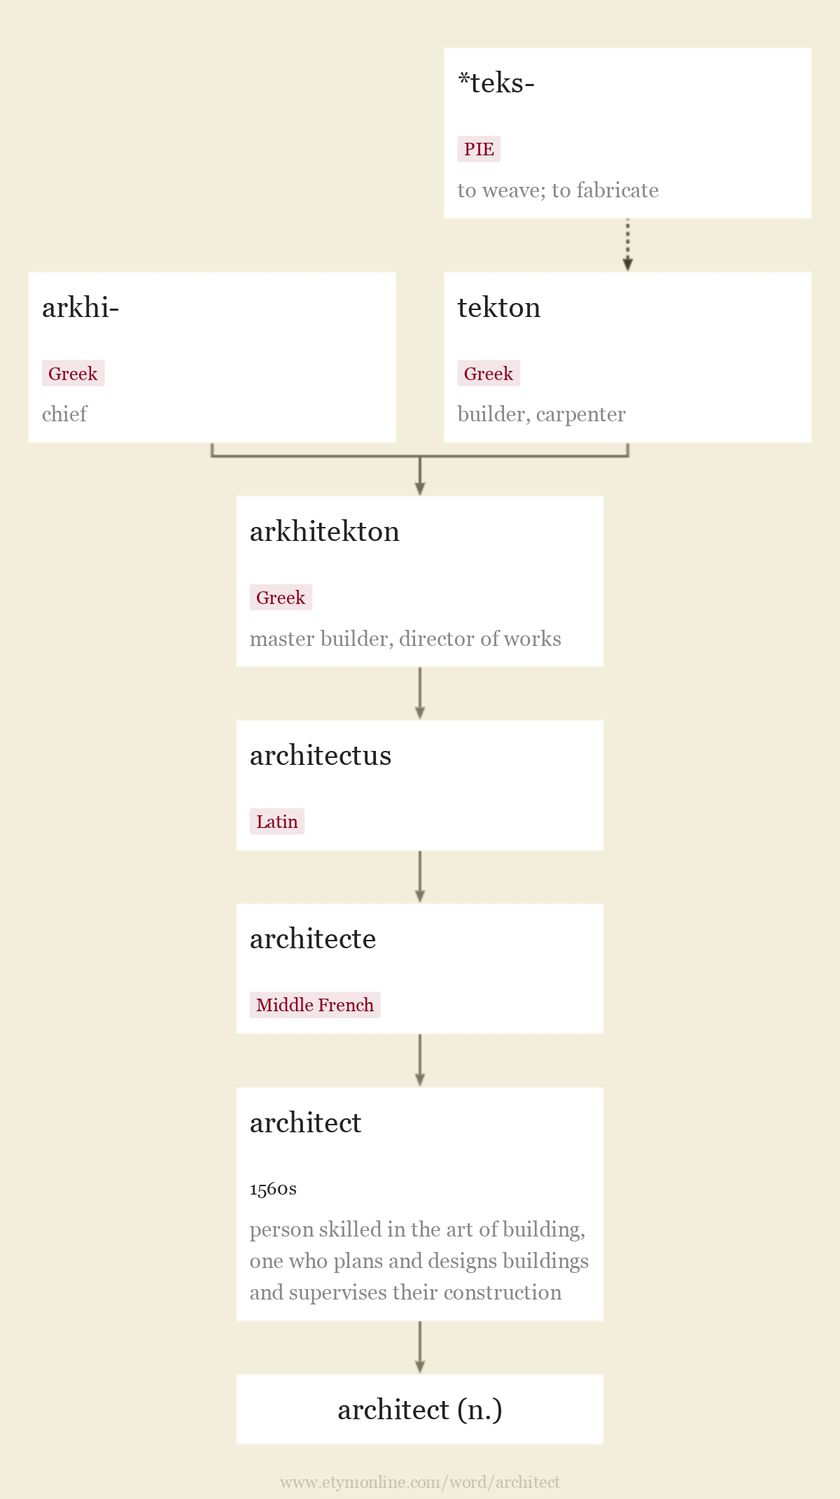 Origin and meaning of architect